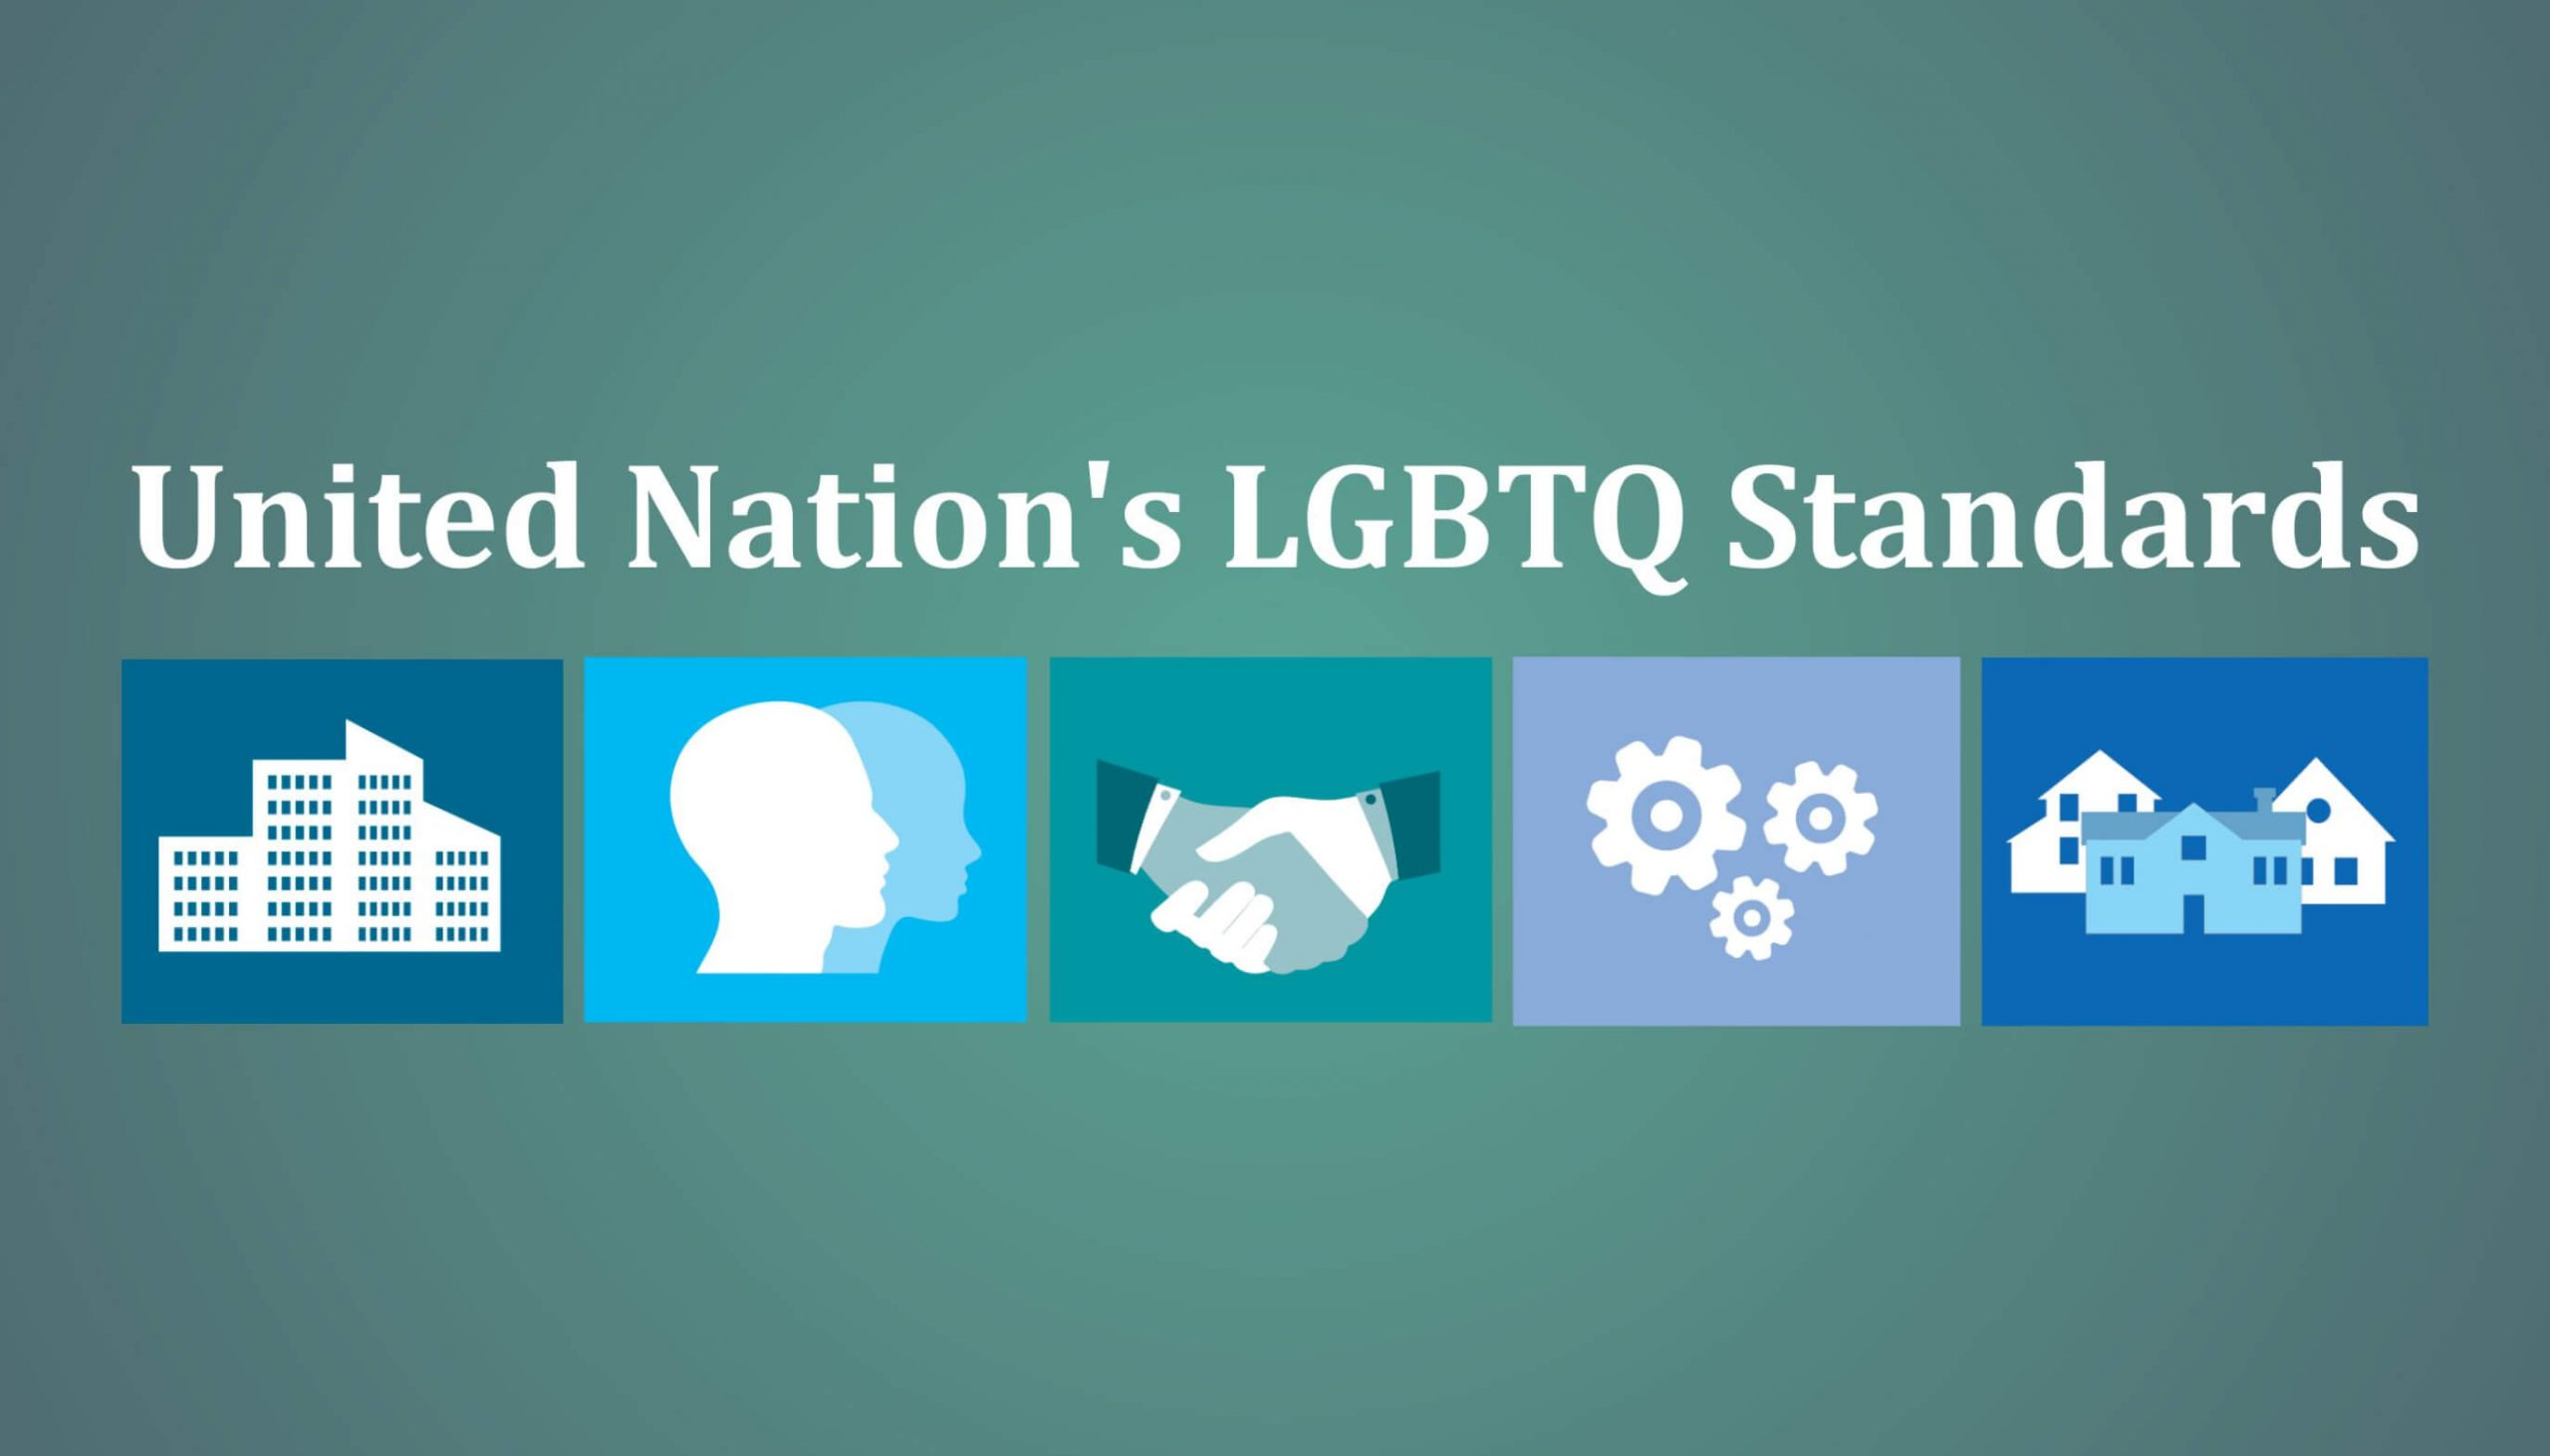 United Nation's LGBTQ Standards